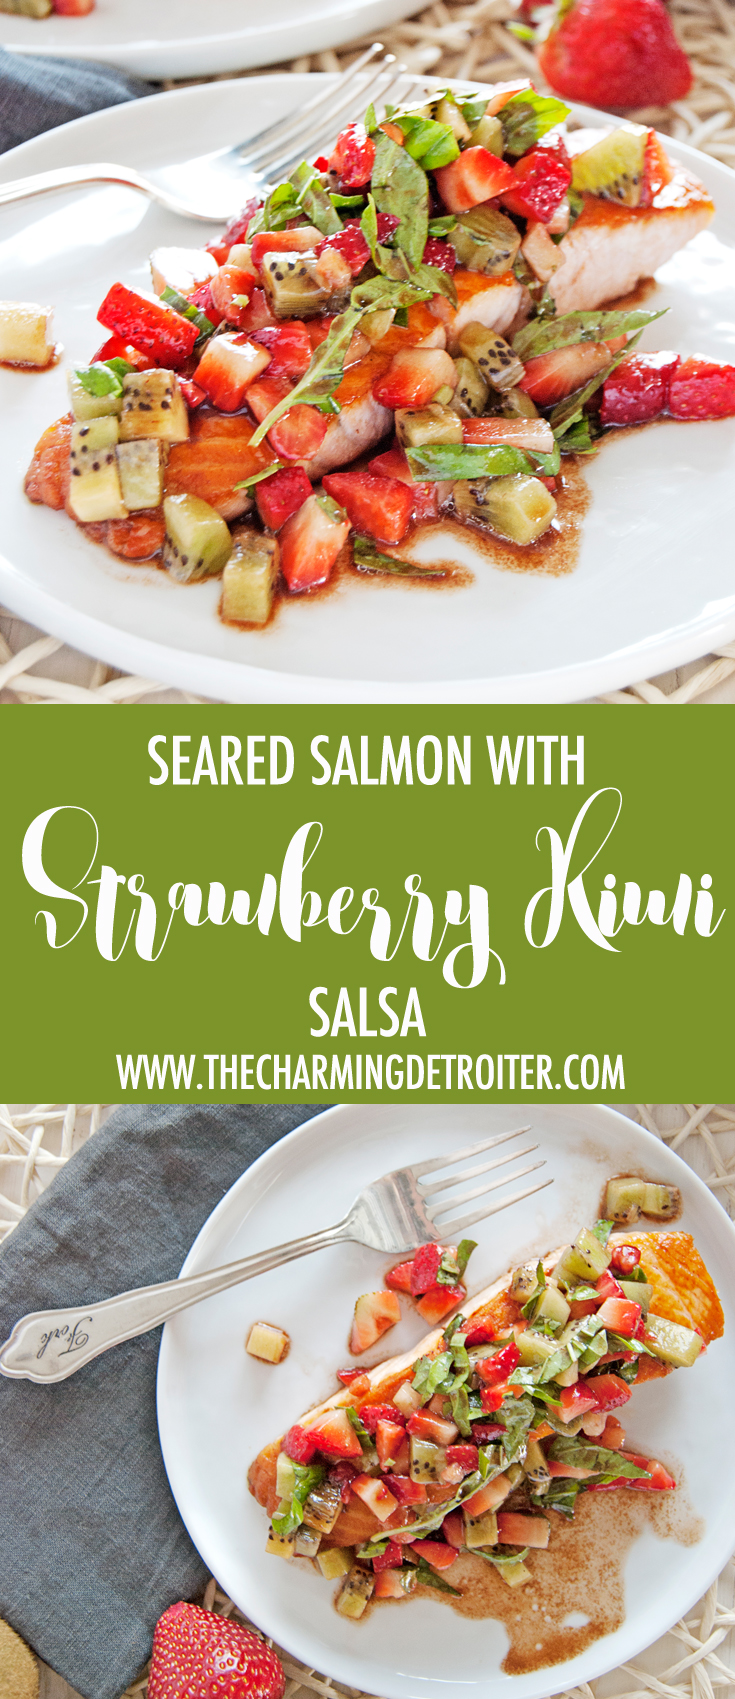 This simple and tasty seared salmon is paired with a deliciously refreshing strawberry and kiwi salsa with fresh basil and balsamic vinegar.